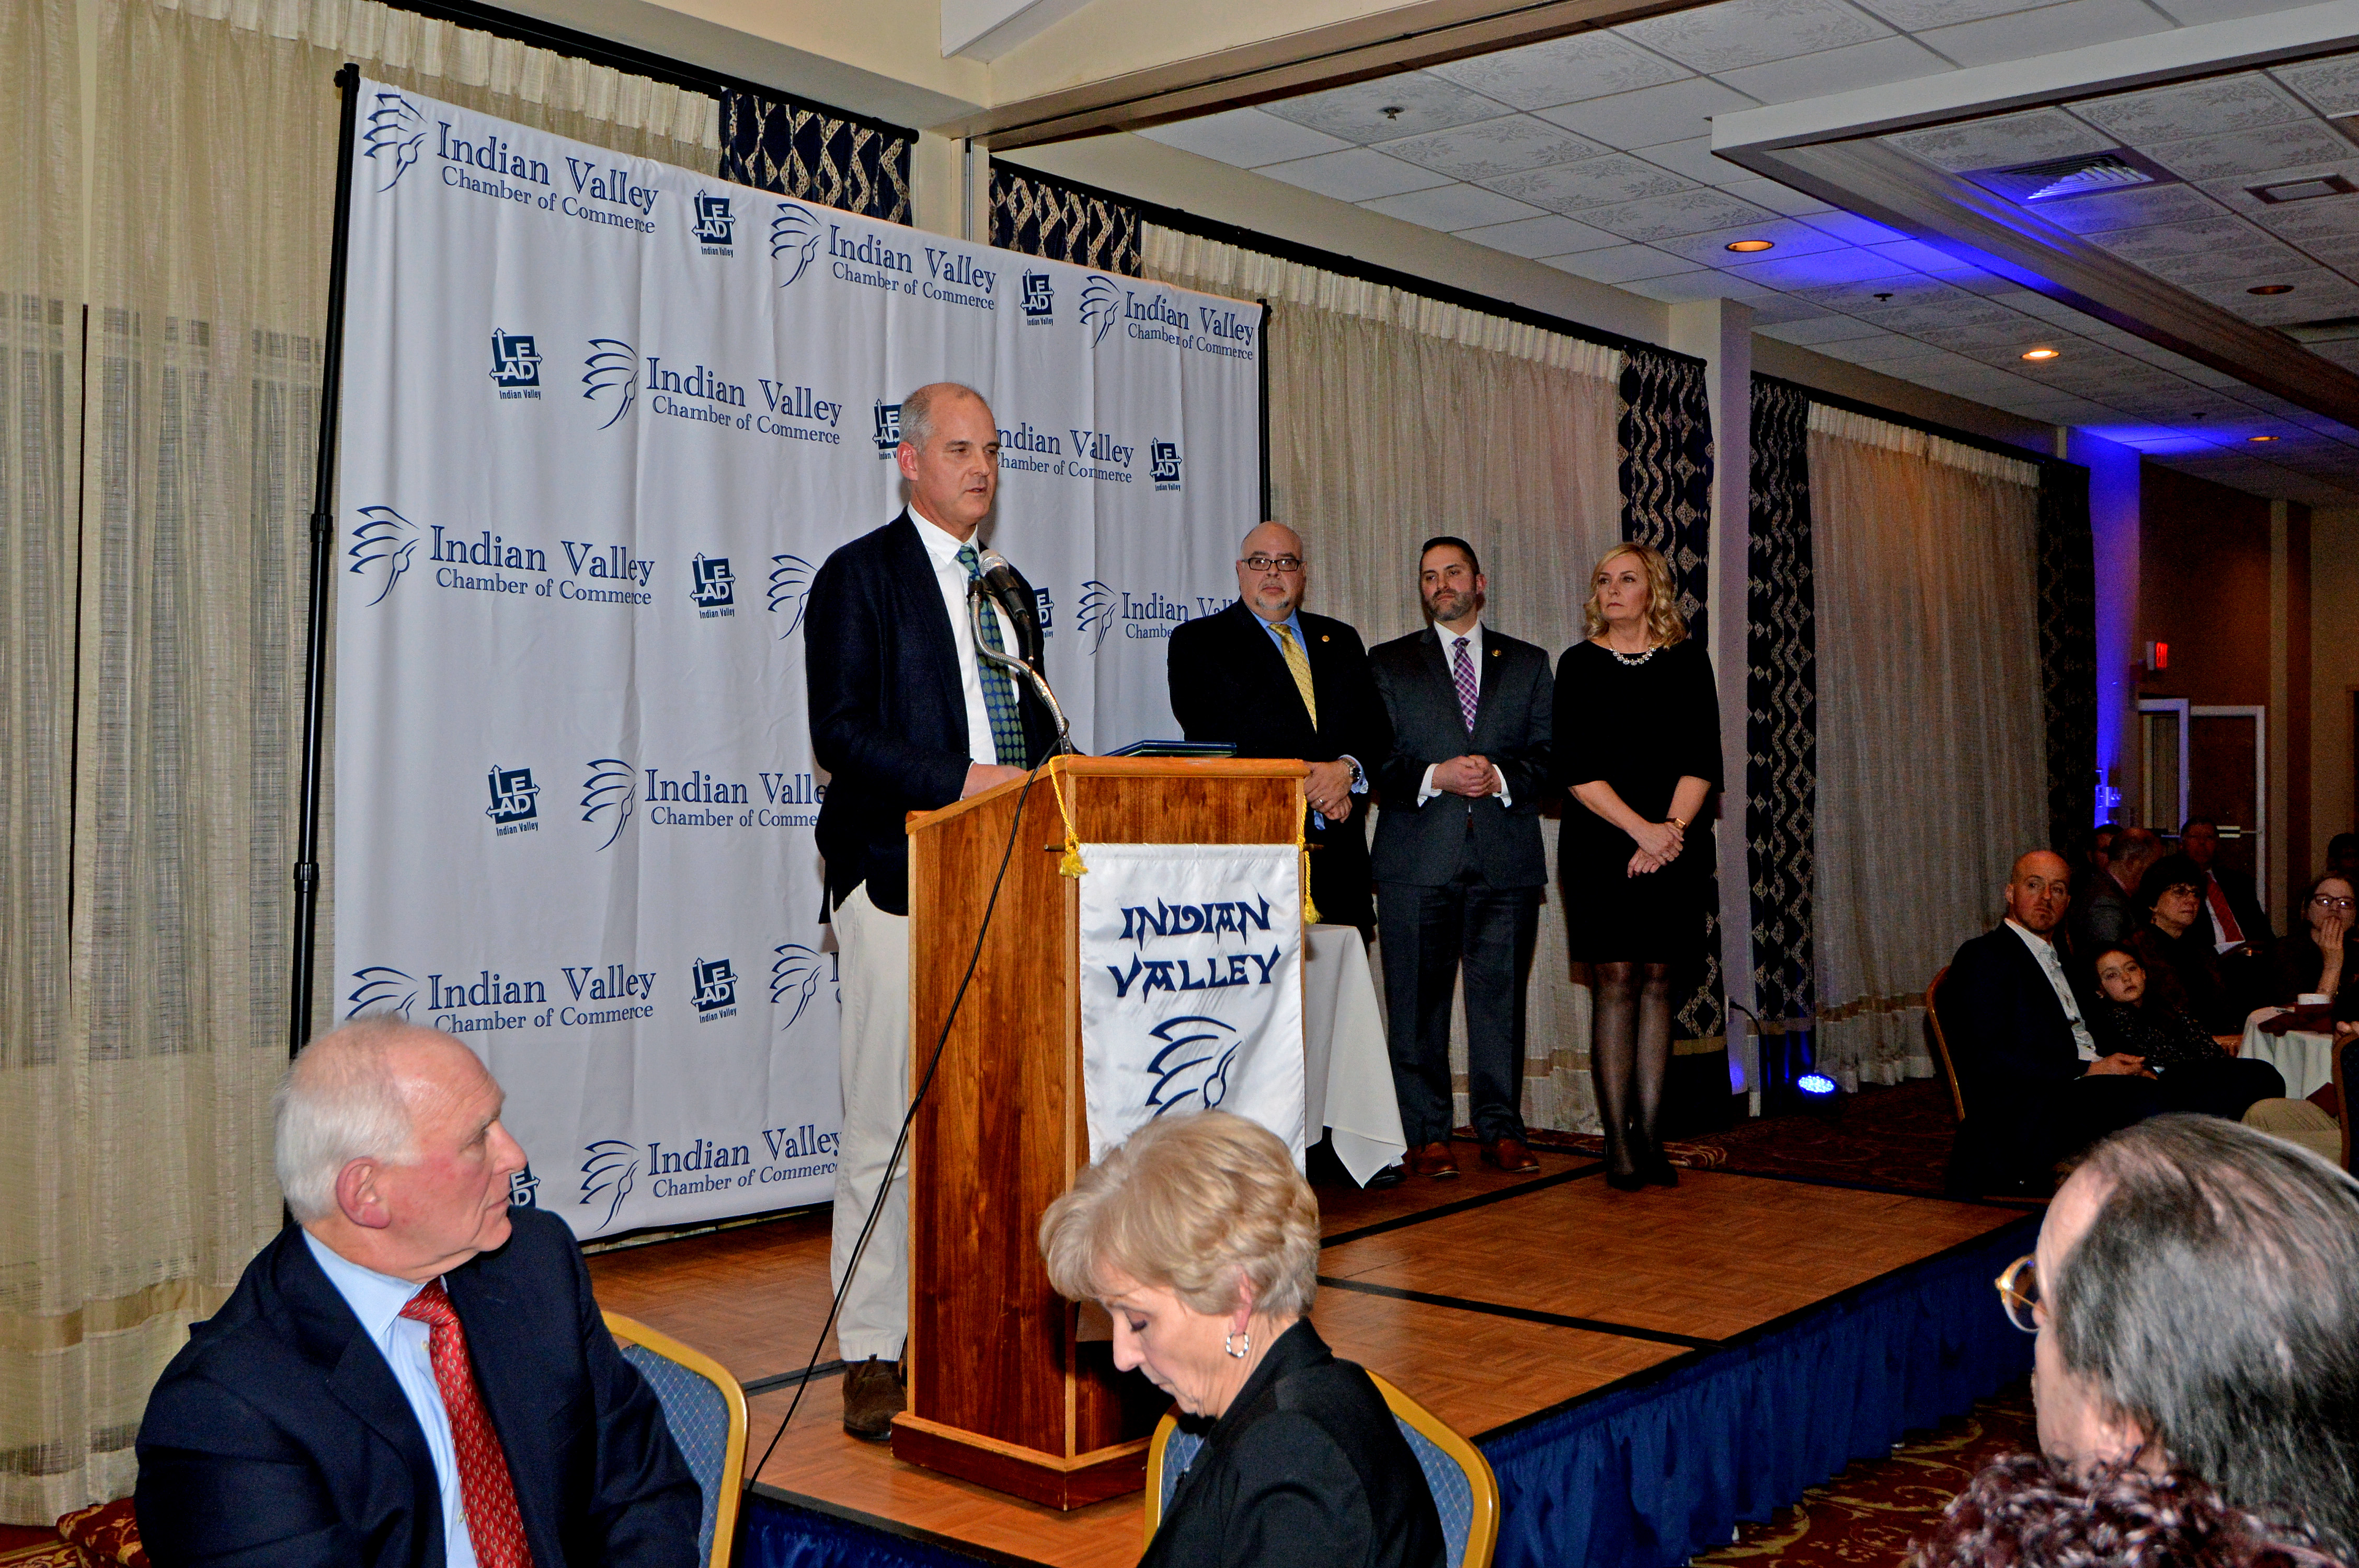 Moyer Indoor | Outdoor honored at the 48th annual Indian Valley Chamber of Commerce banquet